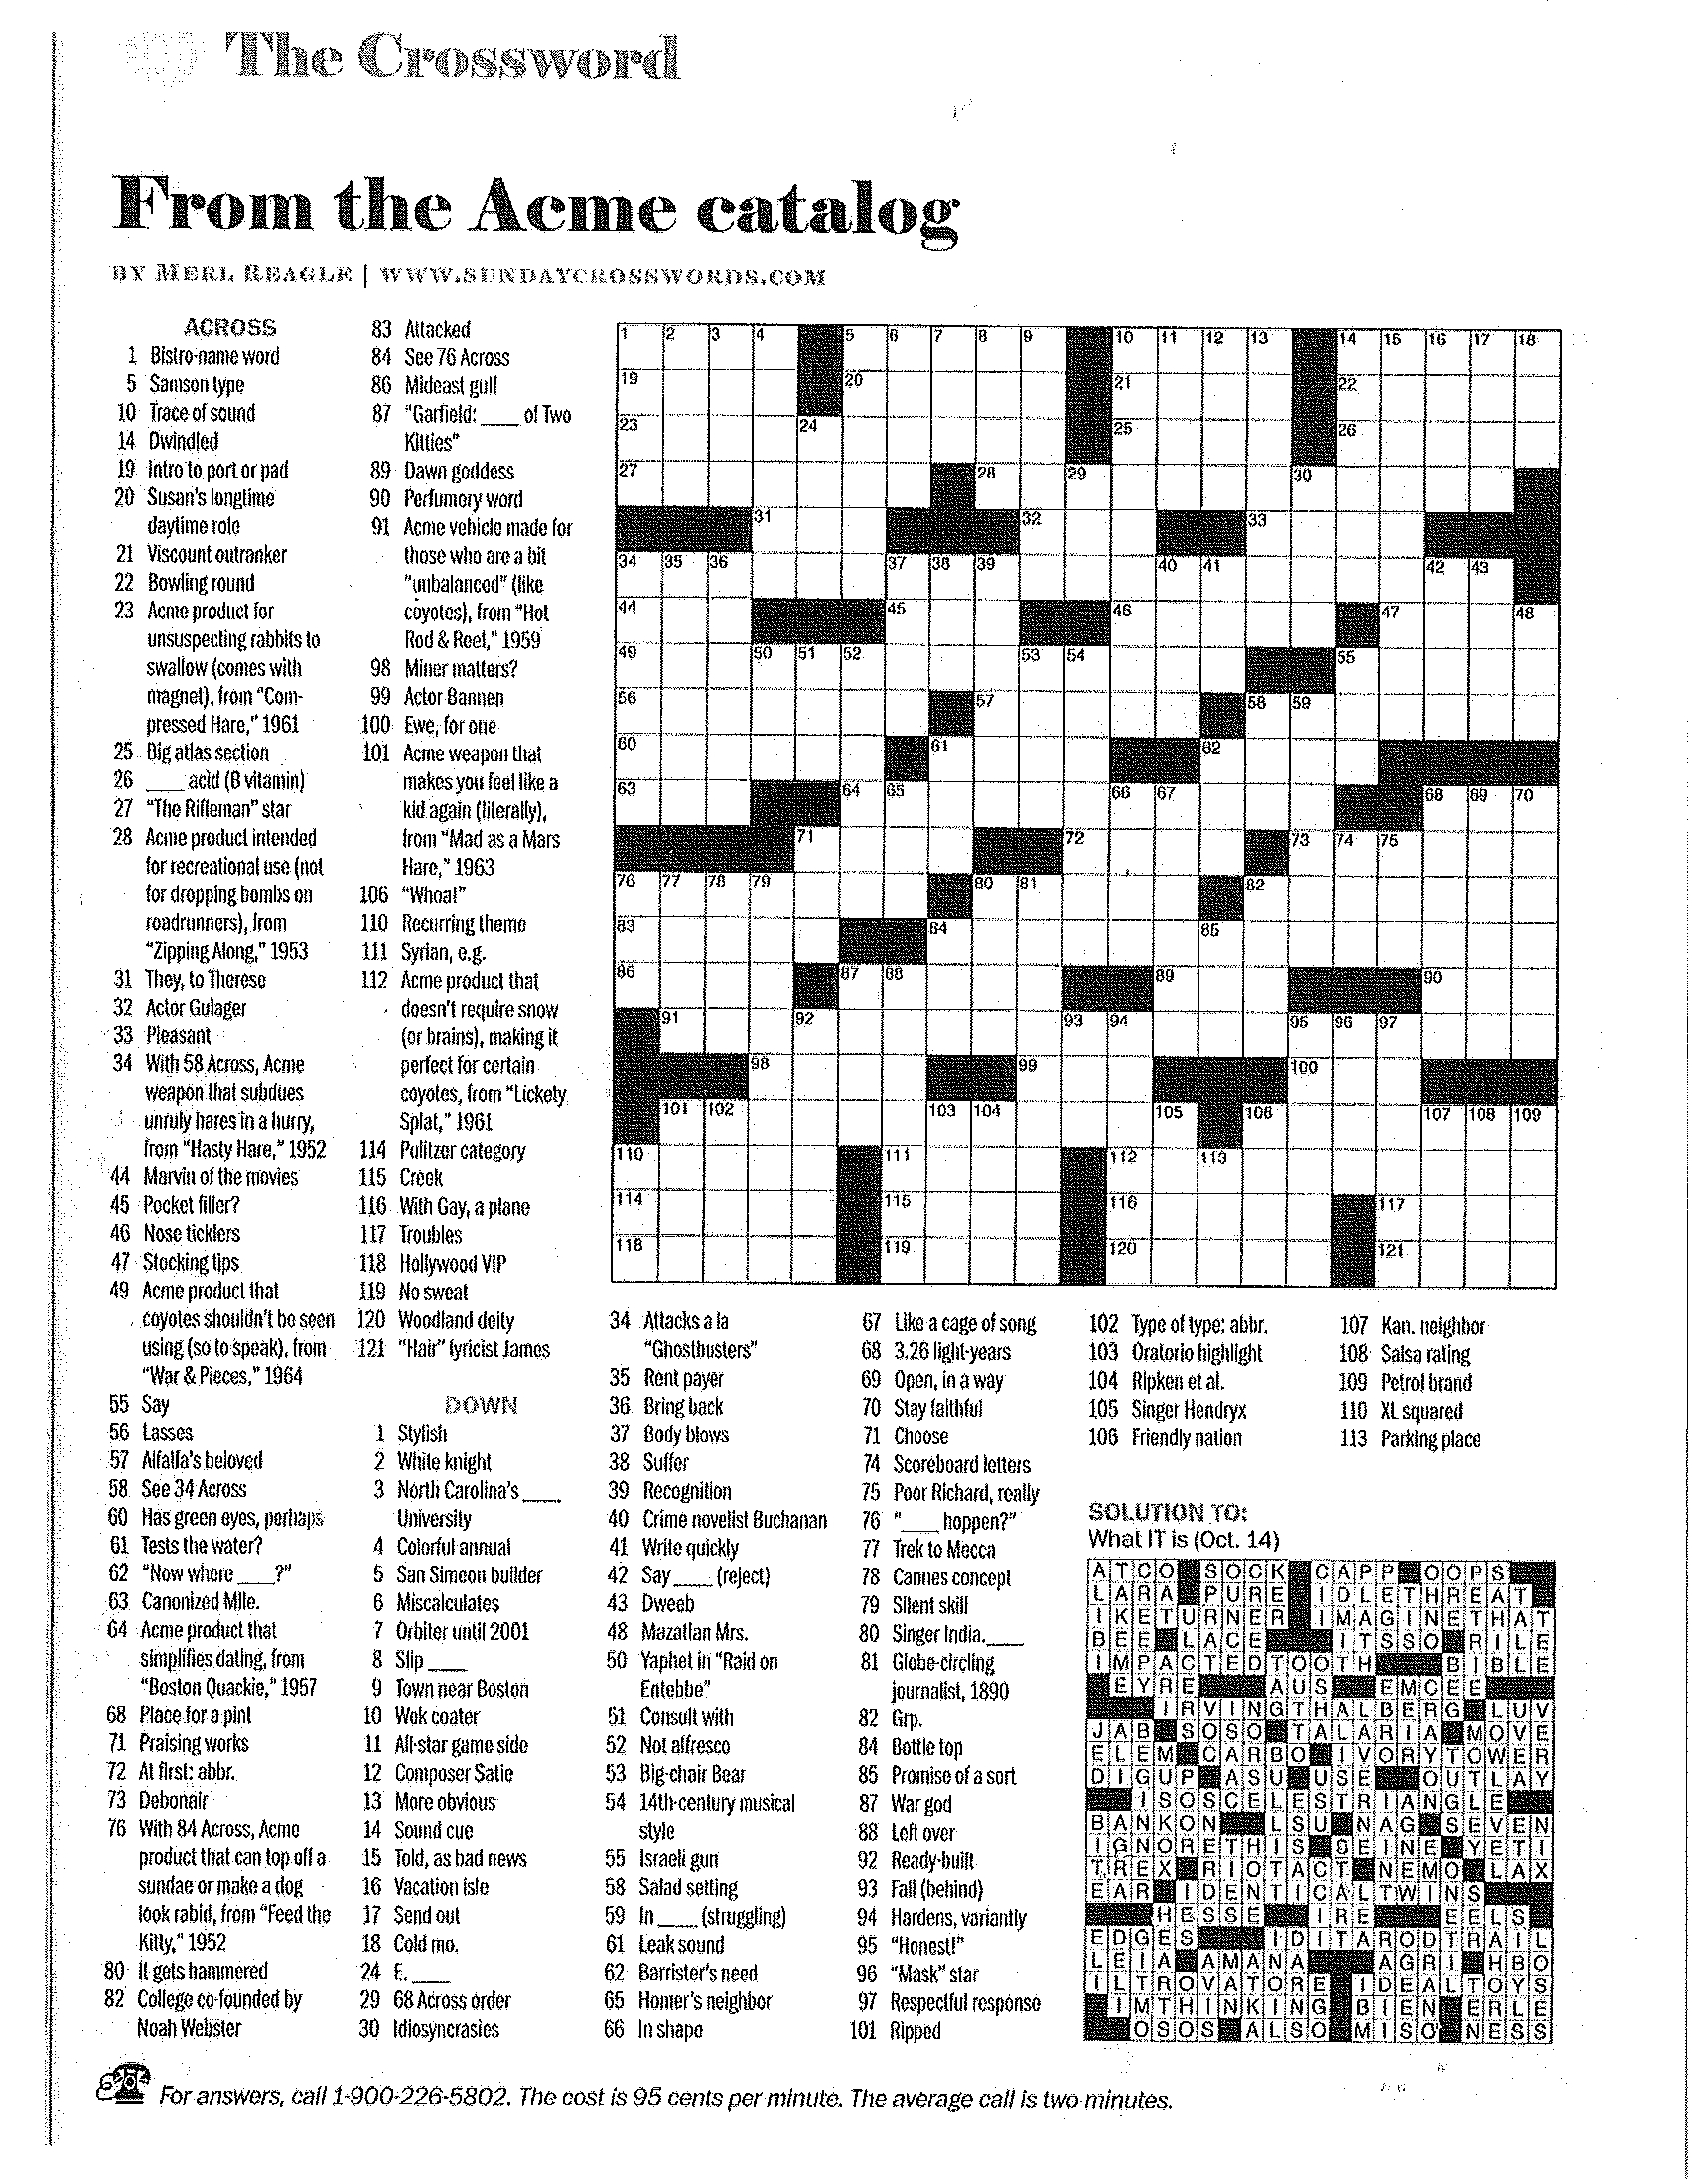 Printable Crossword Puzzles Merl Reagle | Download Them Or Print - Free Printable Merl Reagle Crossword Puzzles